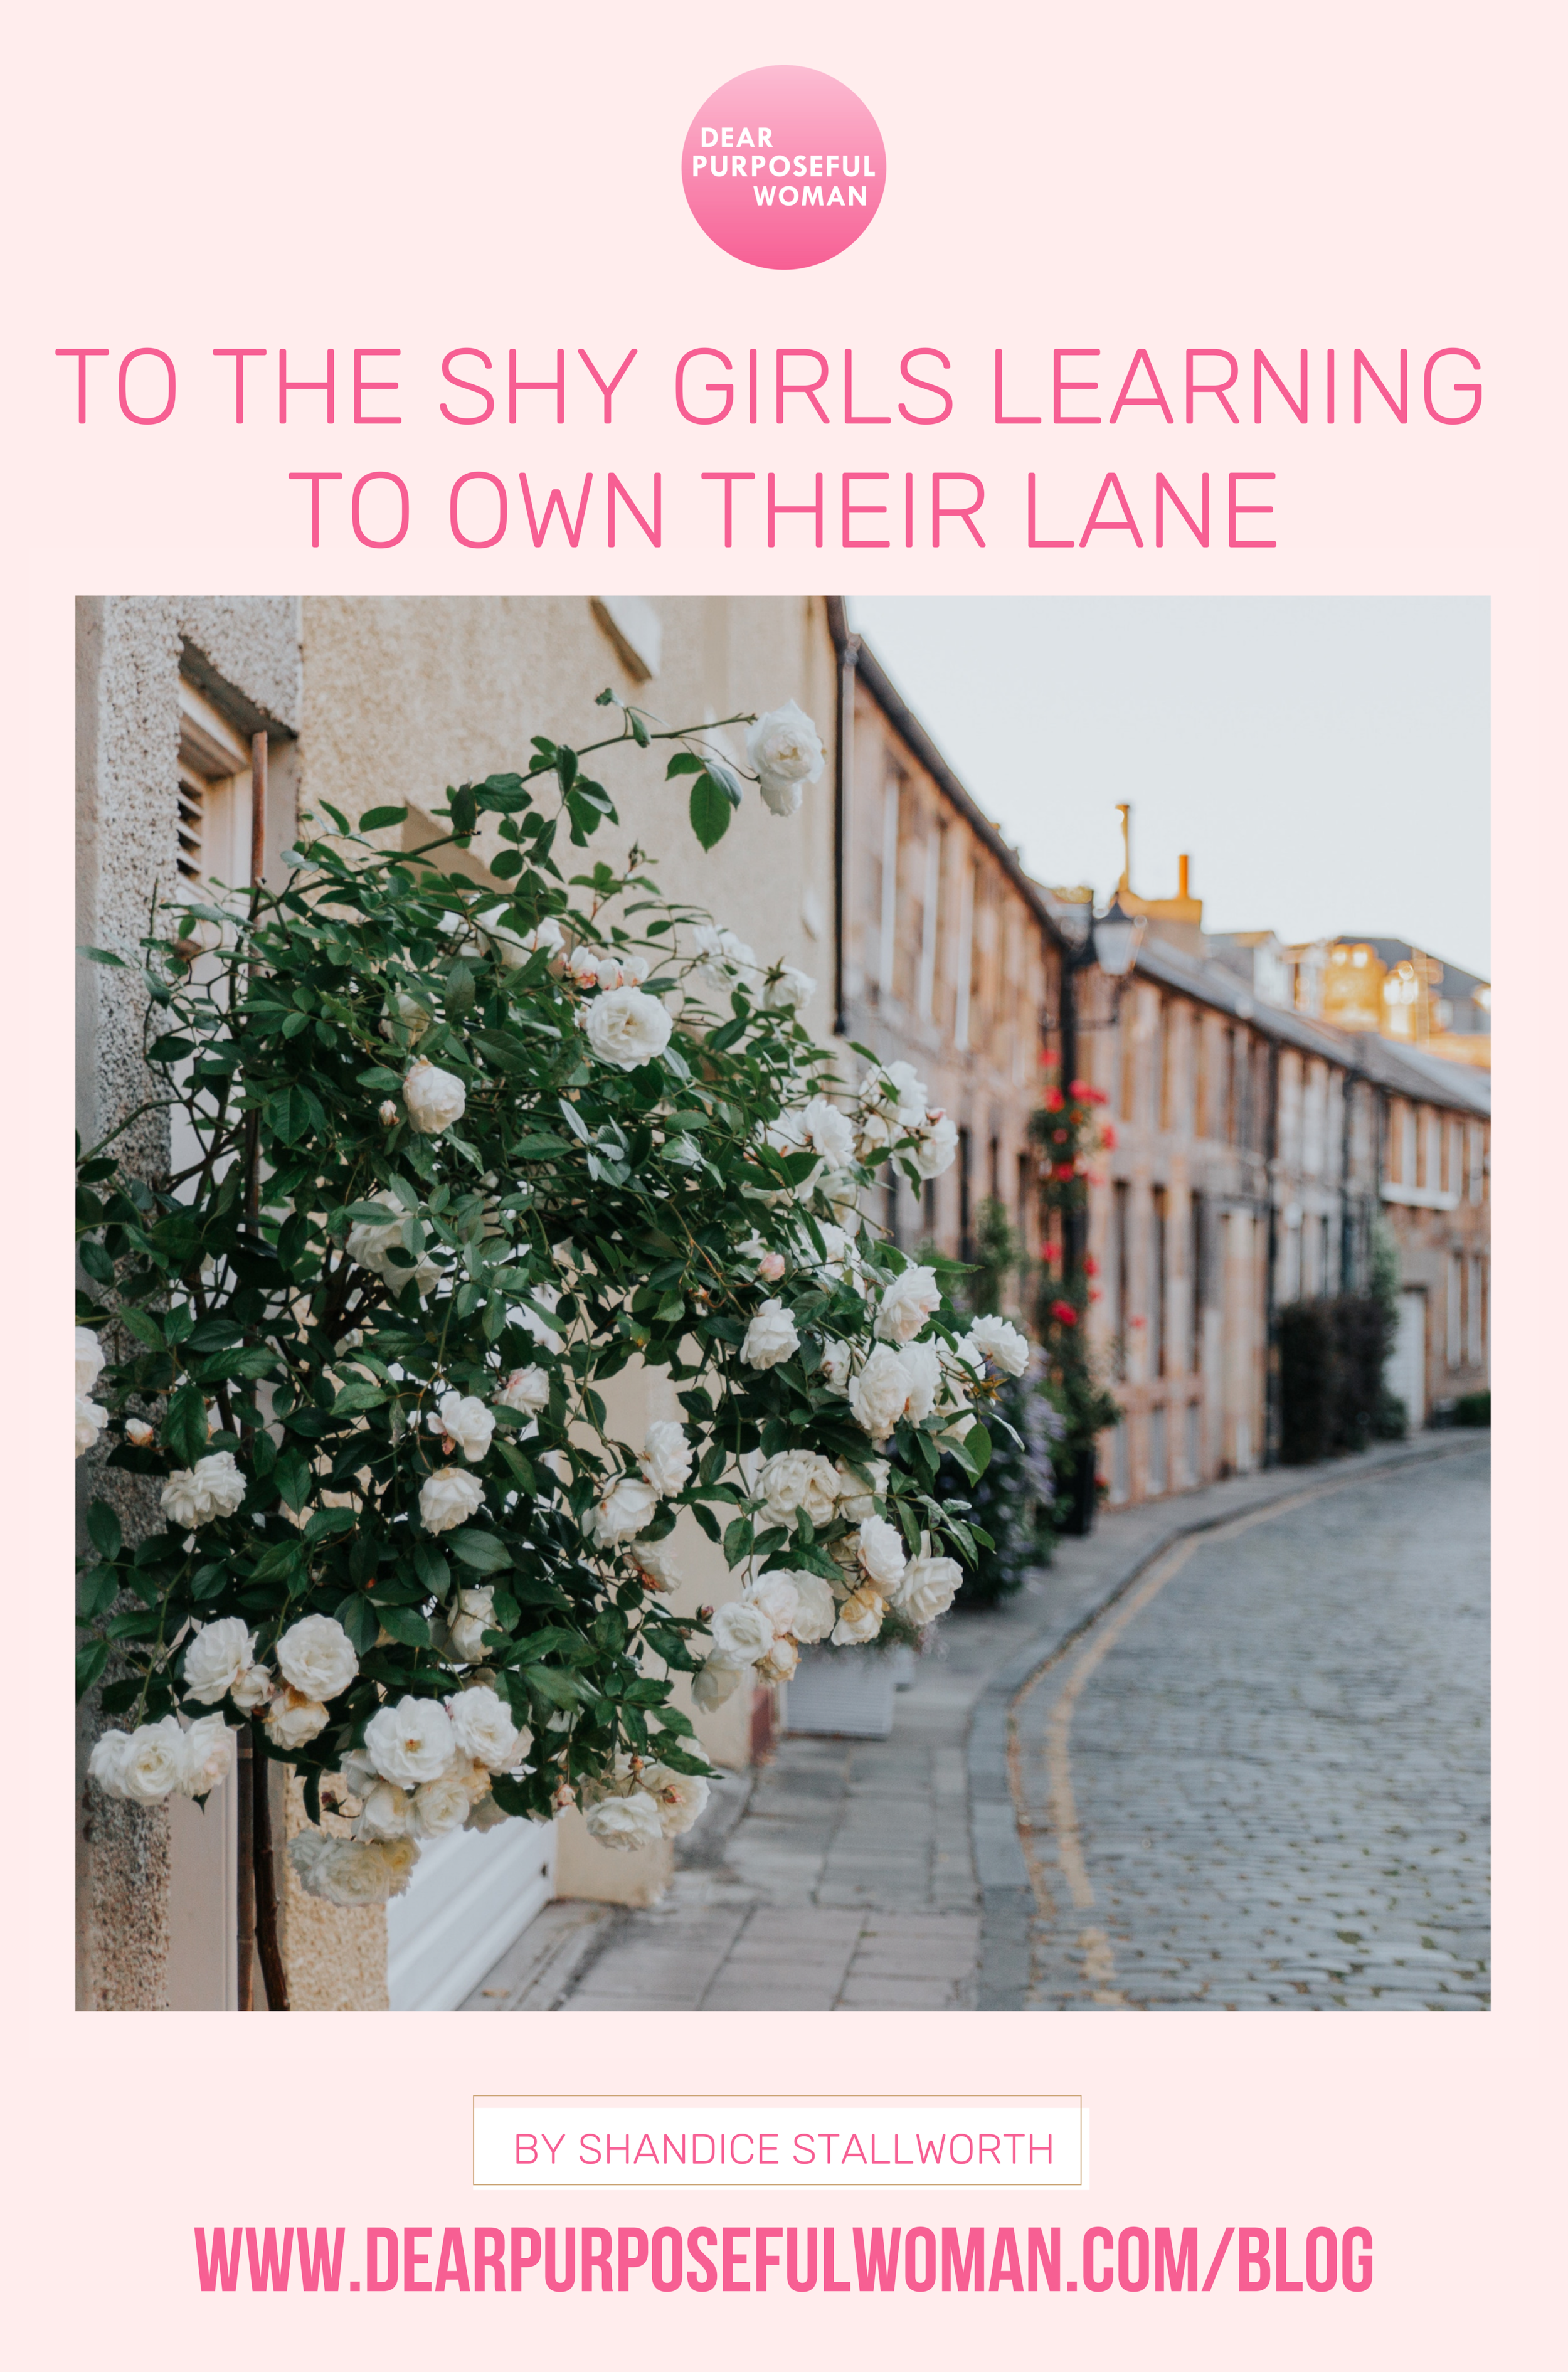 TO THE SHY GIRLS LEARNING TO OWN THEIR LANE - Dear Purposeful Woman.png